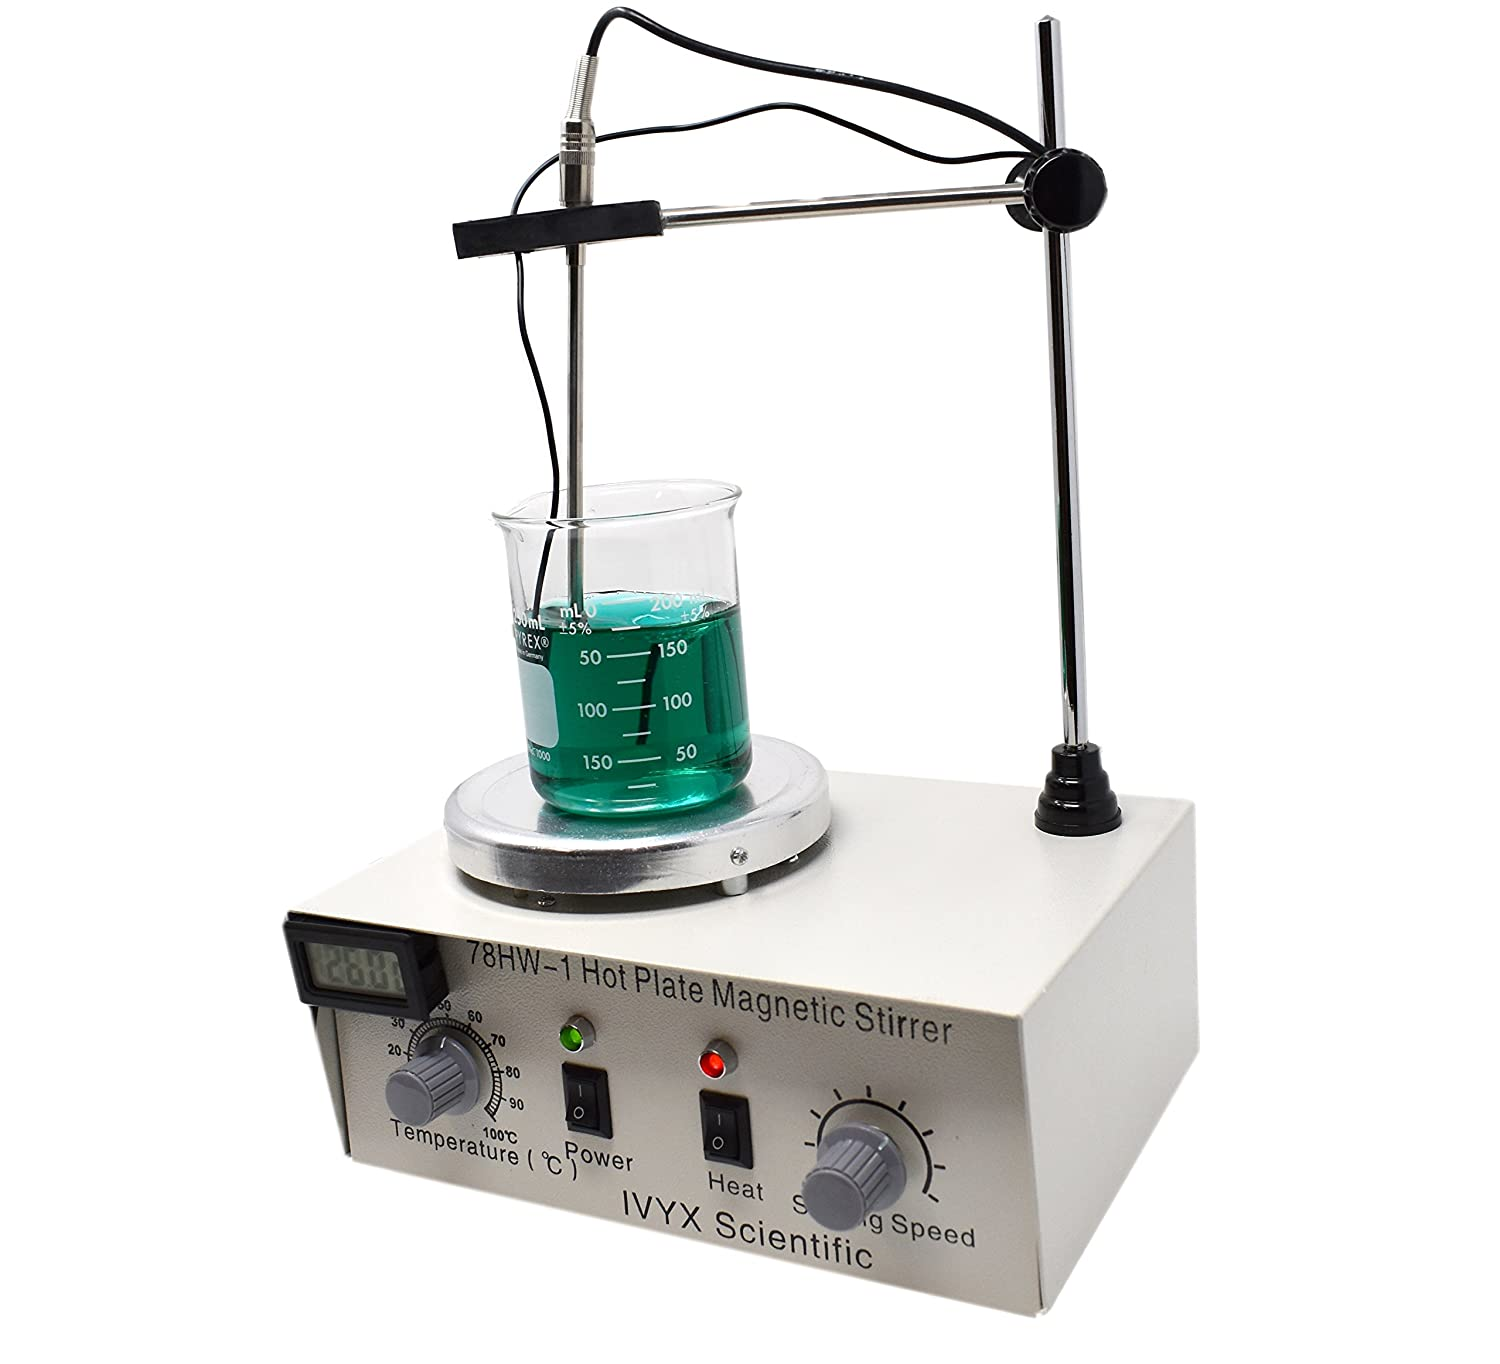 Hot Plate Magnetic Stirrer, 15-1500 RPM, Variable Temperature up to 100C, 110V